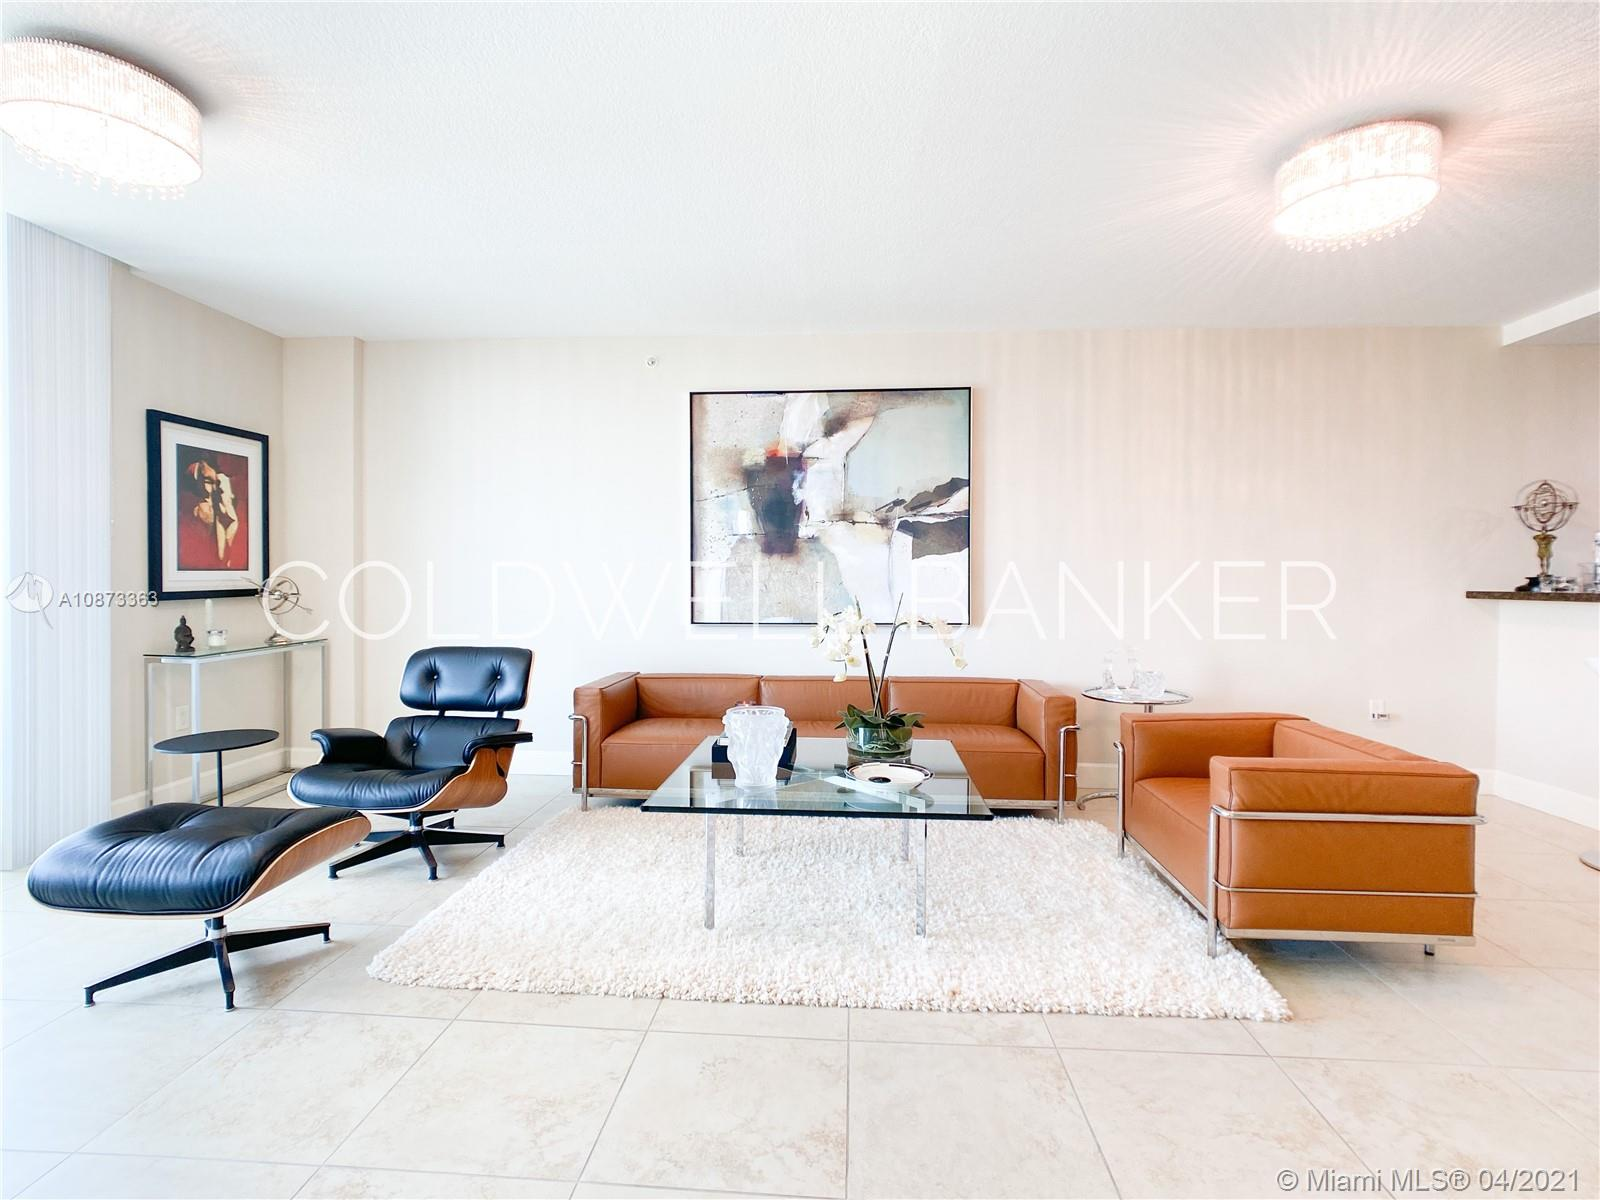 Bright and Spacious condo in the heart of Coral Gables. Unit 810 at the 1300 PONCE features an Open balcony with incredible city views. Unit has wood cabinets, stainless stain appliances, impact windows, built in walking closet, etc. Great building amenities include, pool, gym and lounge room. 24 hrs. concierge. Prime location; close to airport and major expressways and walking distance to Miracle Mile, restaurants, shops and much more. A great investment opportunity, must see!